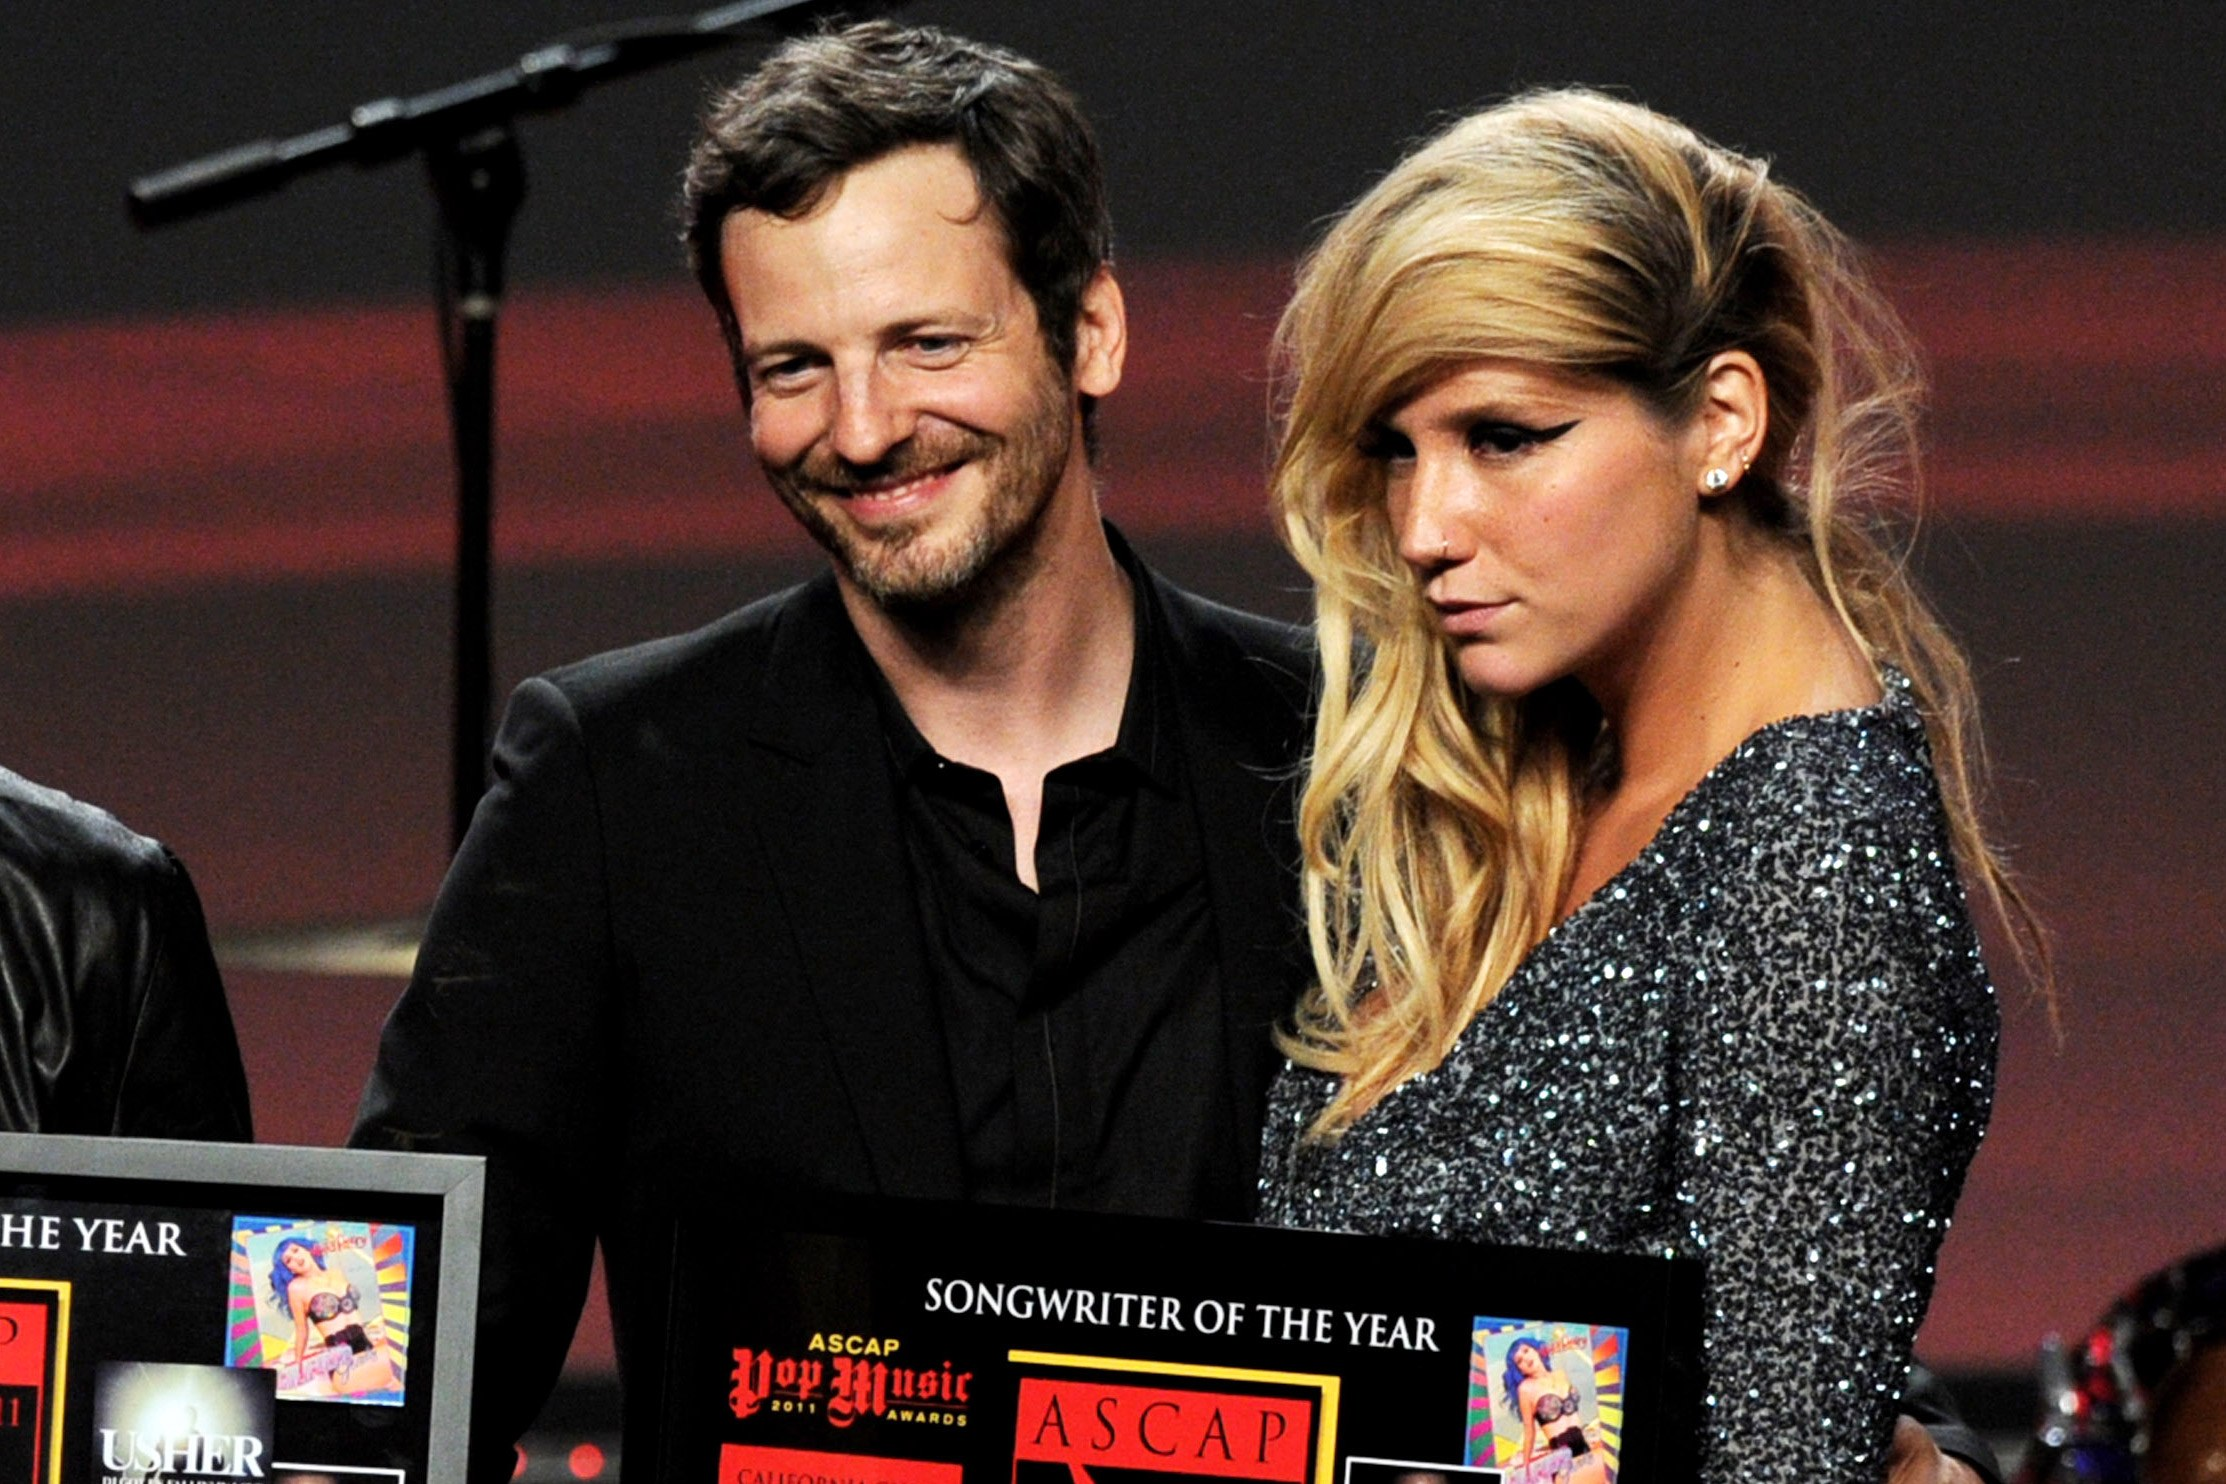 Kesha accused music producer Dr Luke of assaulting her